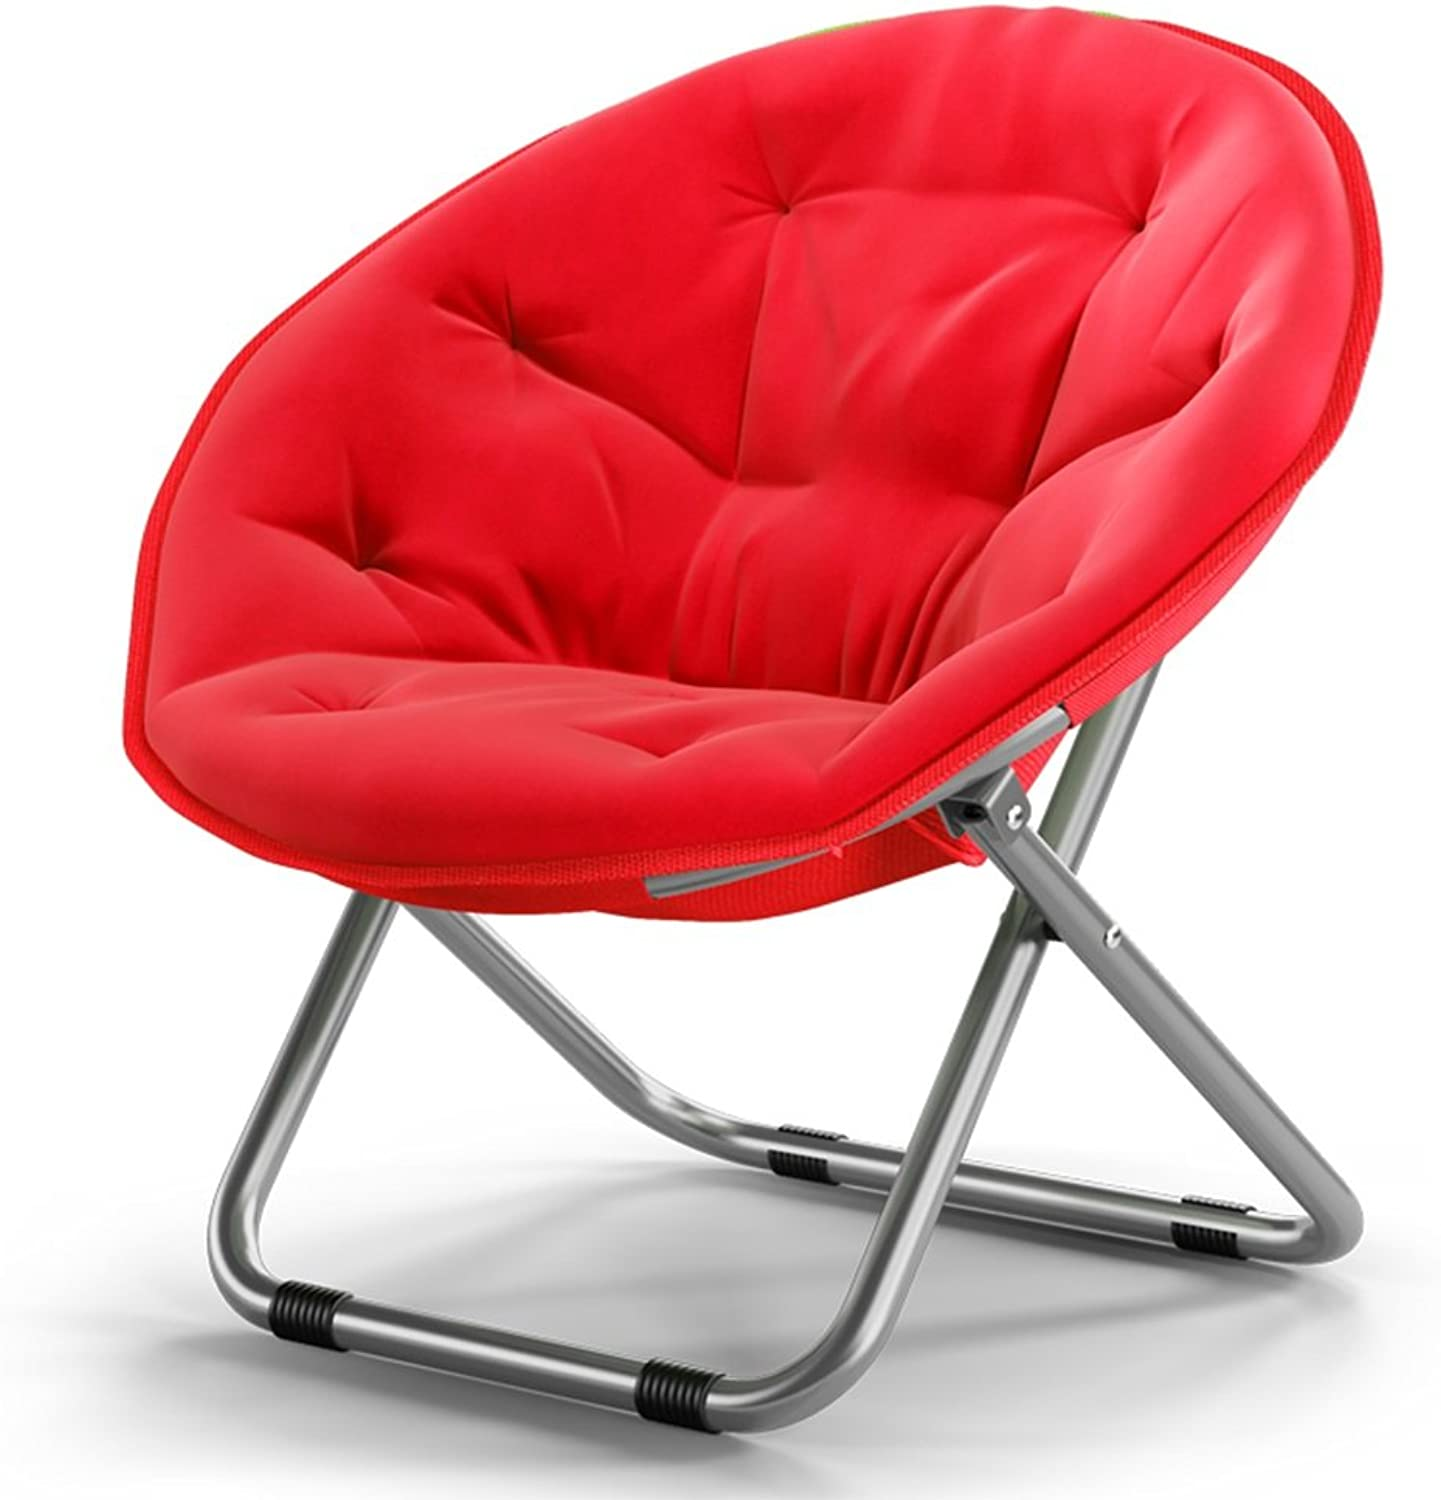 GSHWJS- trash can Adult Moon Chair Sun Chair Lazy Chair Recliner Folding Chair Round Chair Sofa Chair Folding Chair (color   Red)